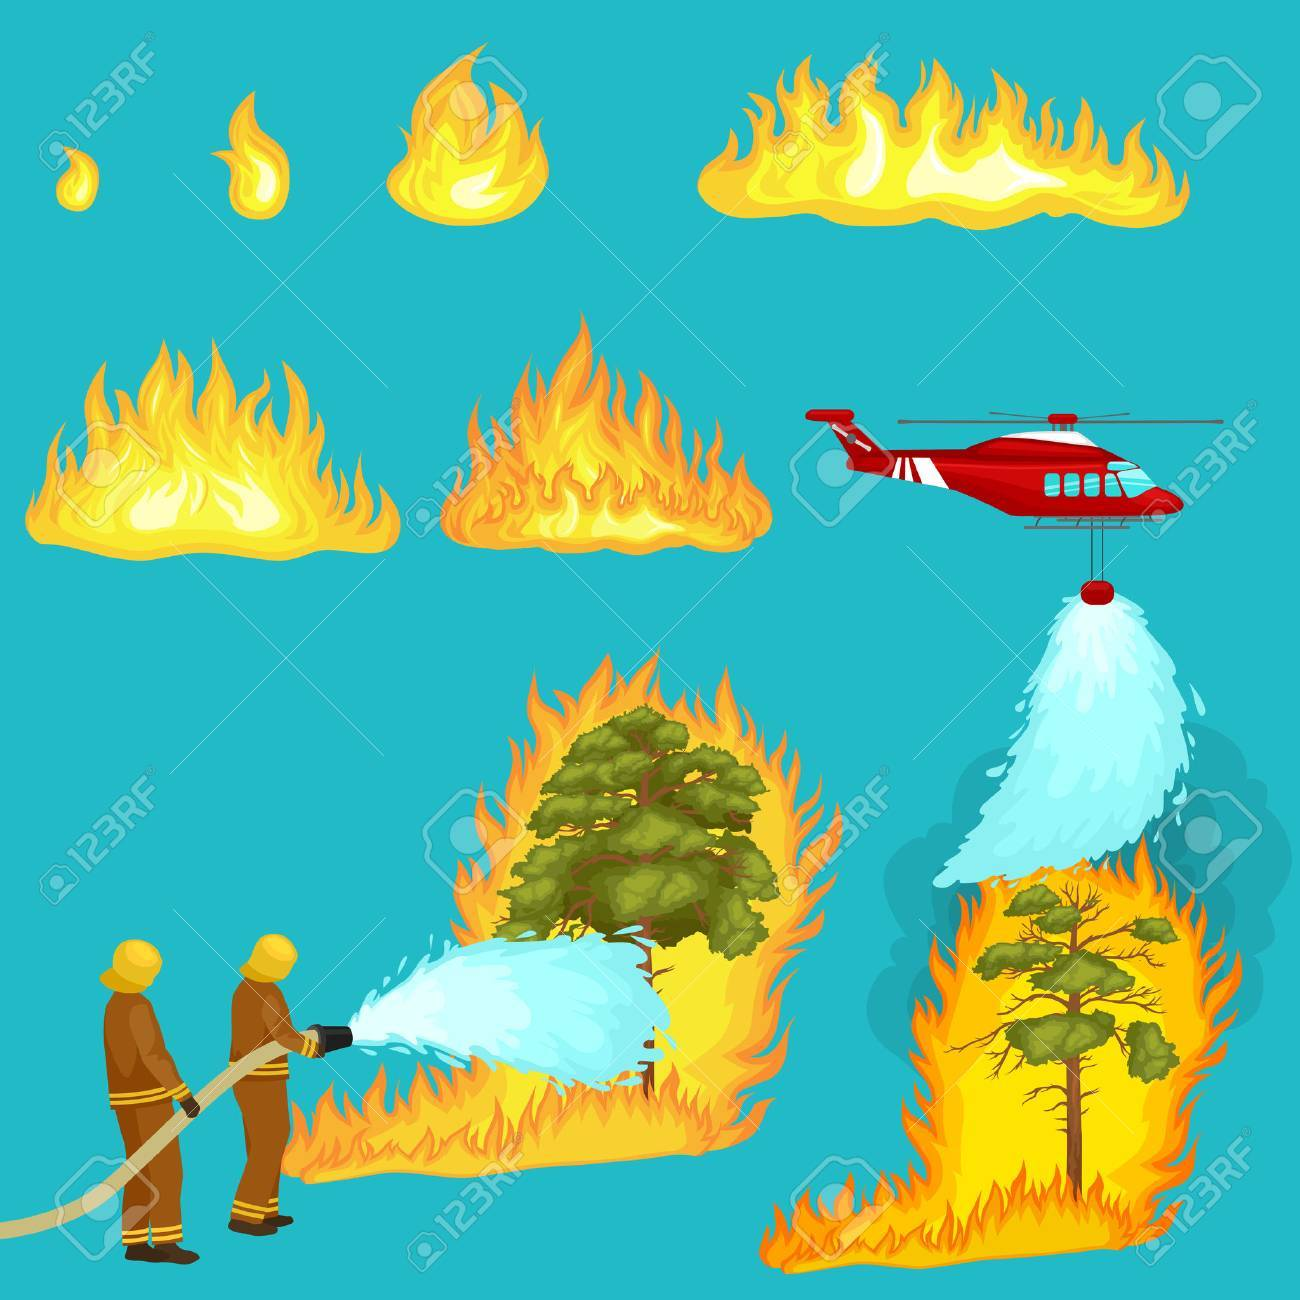 Firefighters in protective clothing and helmet with helicopter extinguish with water from hoses dangerous wildfire.Man fighter rescue helicopter put out the fire in forest landscape damage vector - 60196899